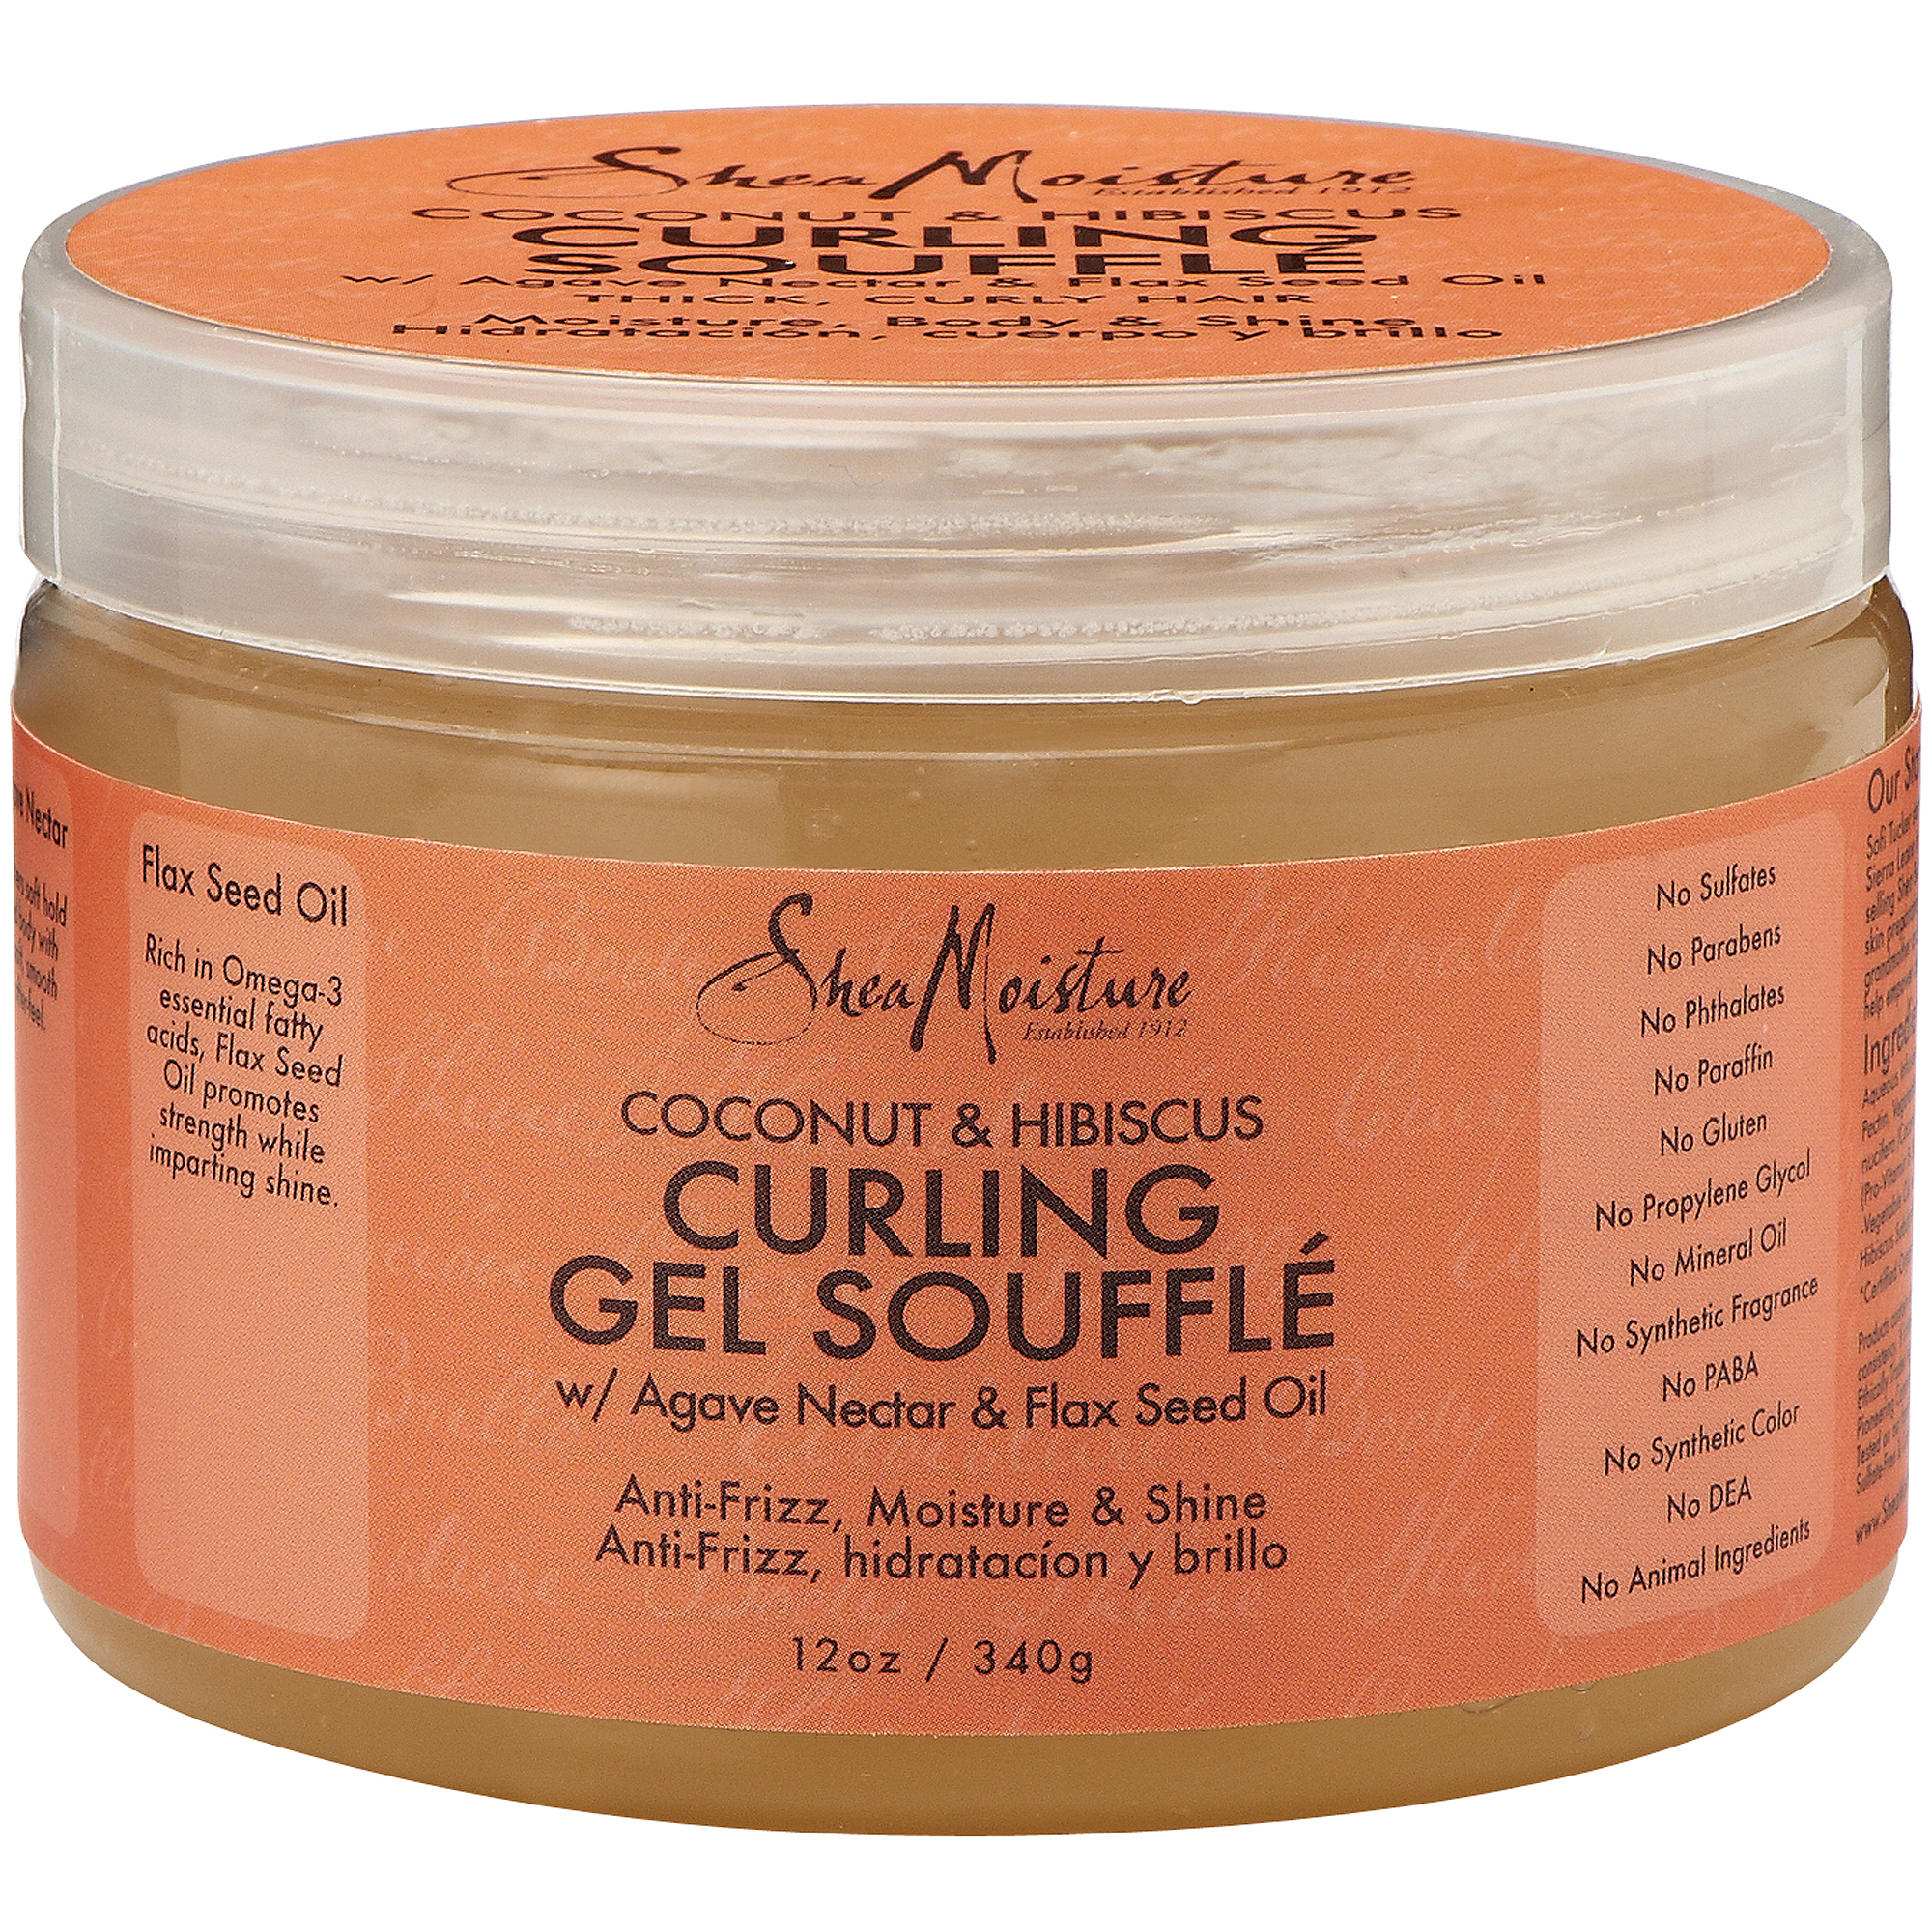 SheaMoisture Coconut & Hibiscus Curling Gel Souffle, 12 oz